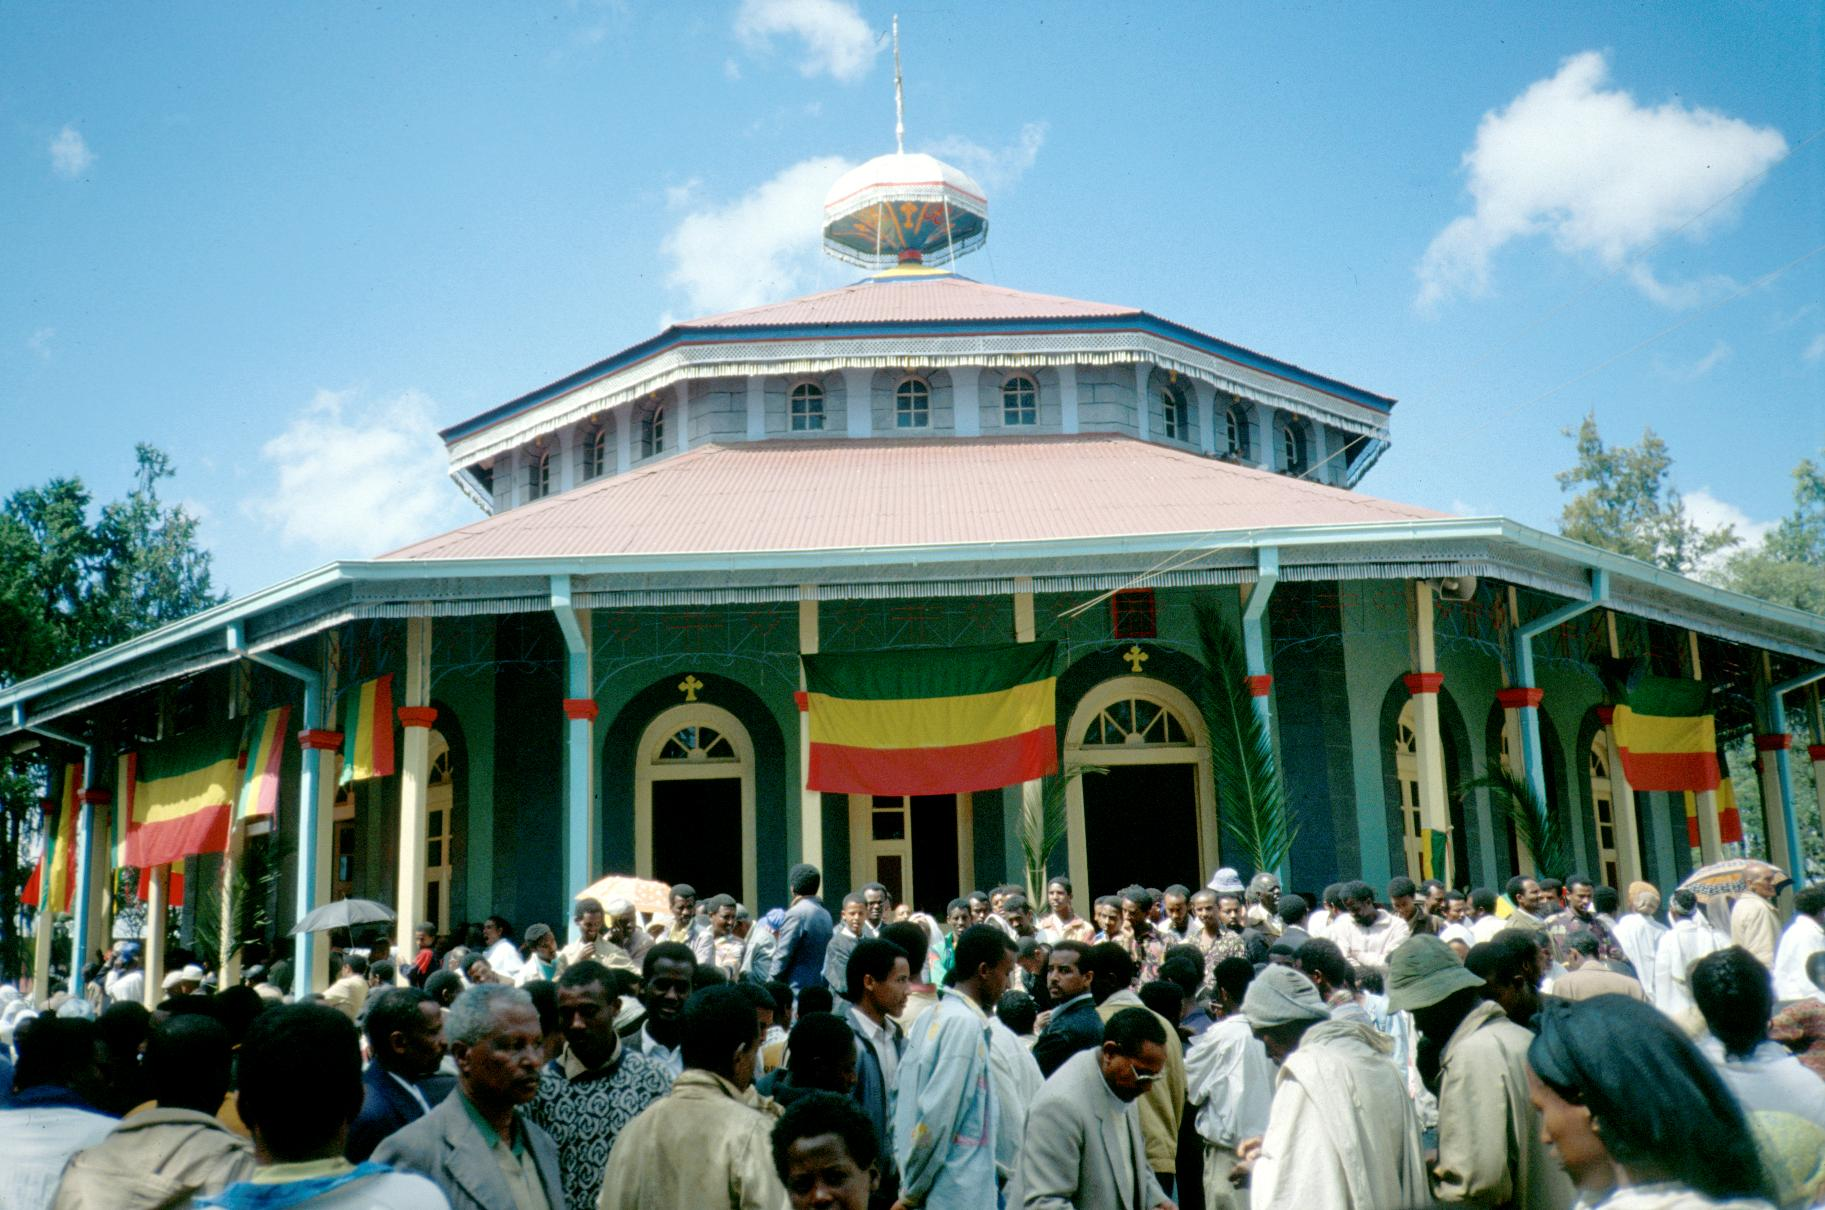 A Feast Day At An Ethiopian Orthodox Church In Addis Ababa